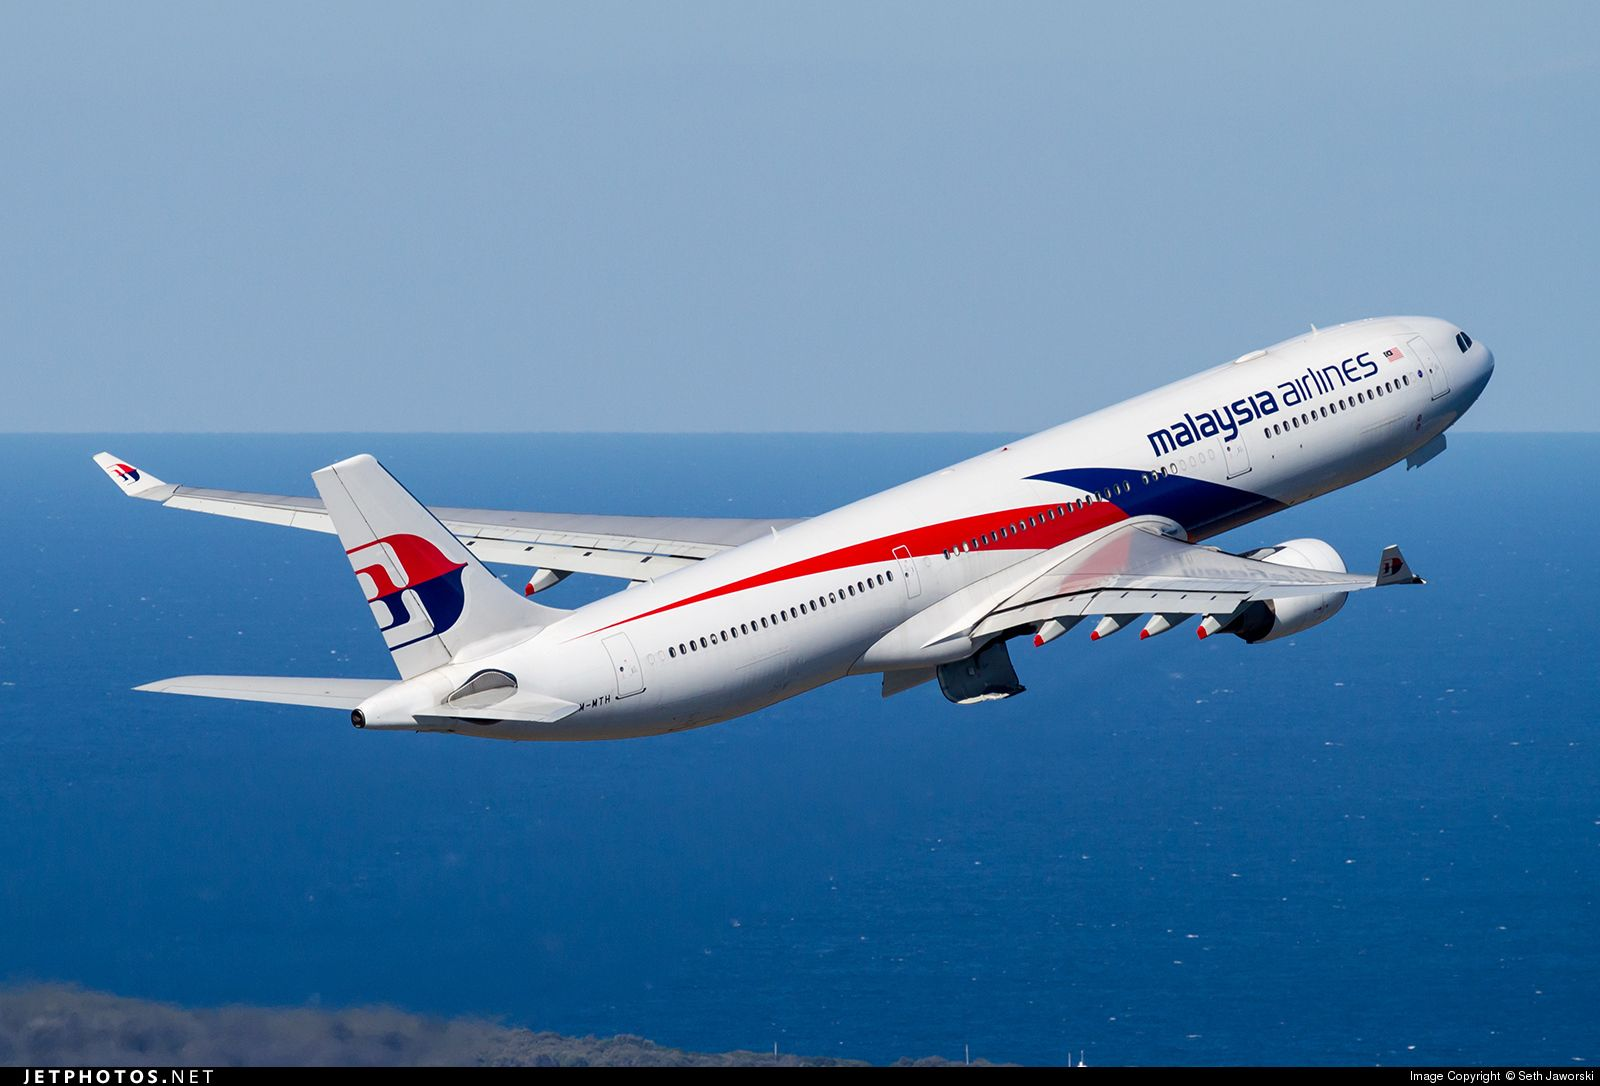 Malaysia Airlines A330-323 9M-MTH s/n 1336 at Sydney Kingsford Smith Int'l Airport - Photo by: Seth Jaworski